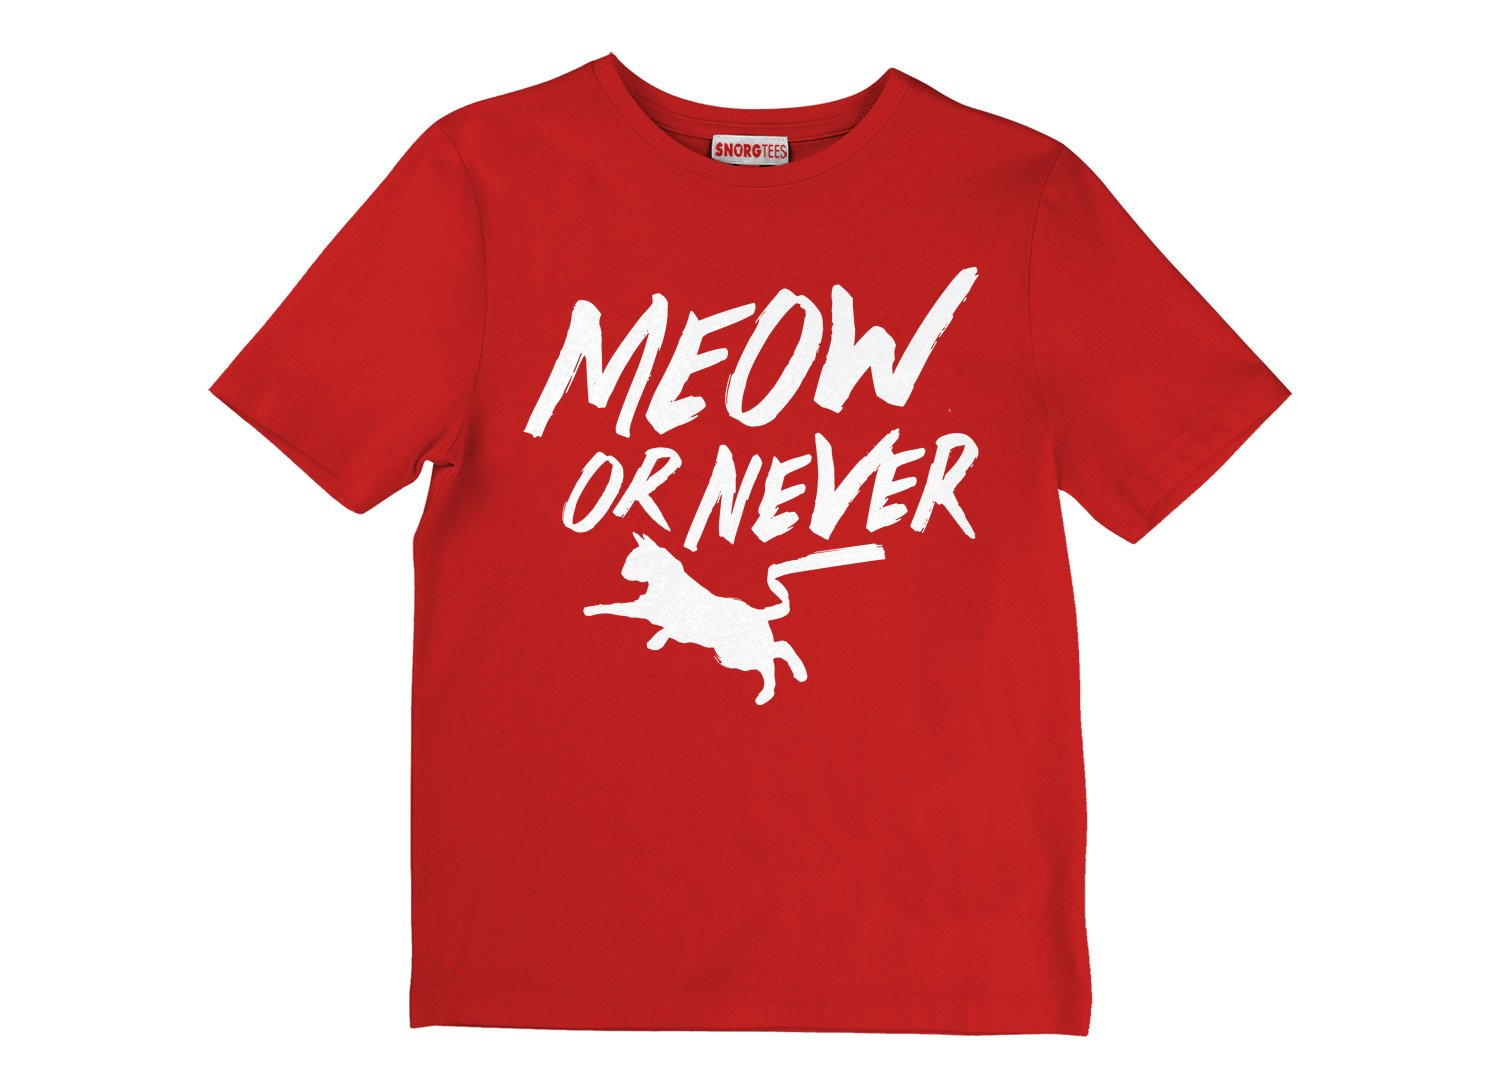 Meow Or Never on Kids T-Shirt